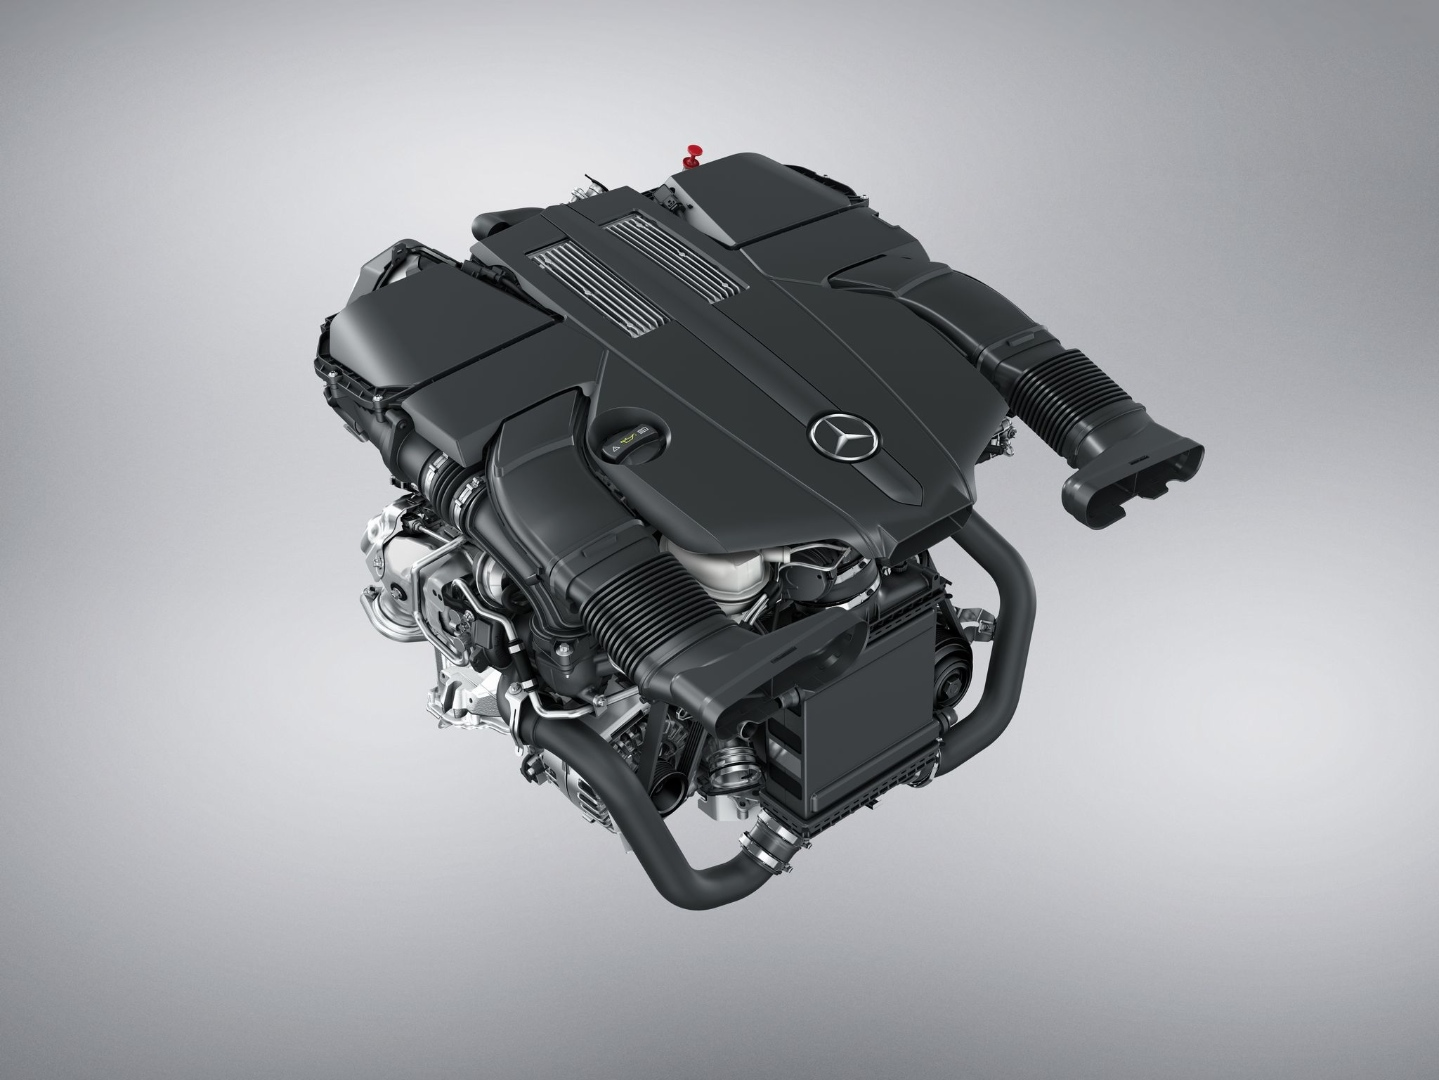 Mercedes Benz Quietly Introduces All New V6 Engine On Cls